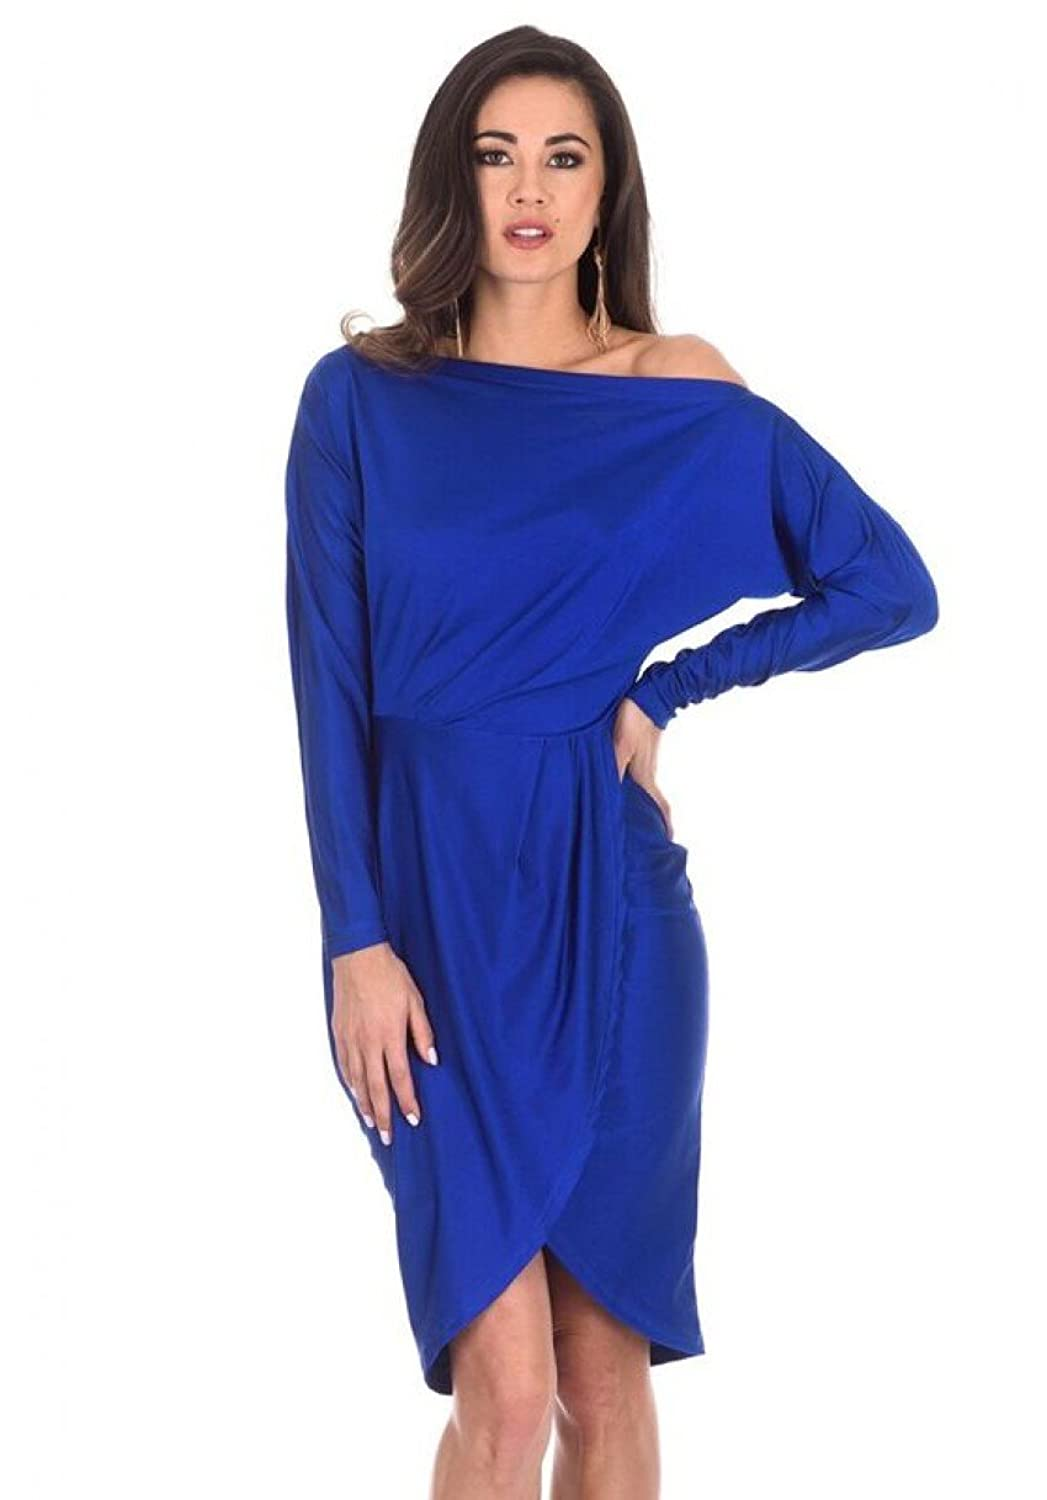 644645c4247cd Rock inthis cute shrug relaxed shoulder wrapped midi; the ultimate girls  night out dress for you! This is a flattering fit and would look unreal  with your ...